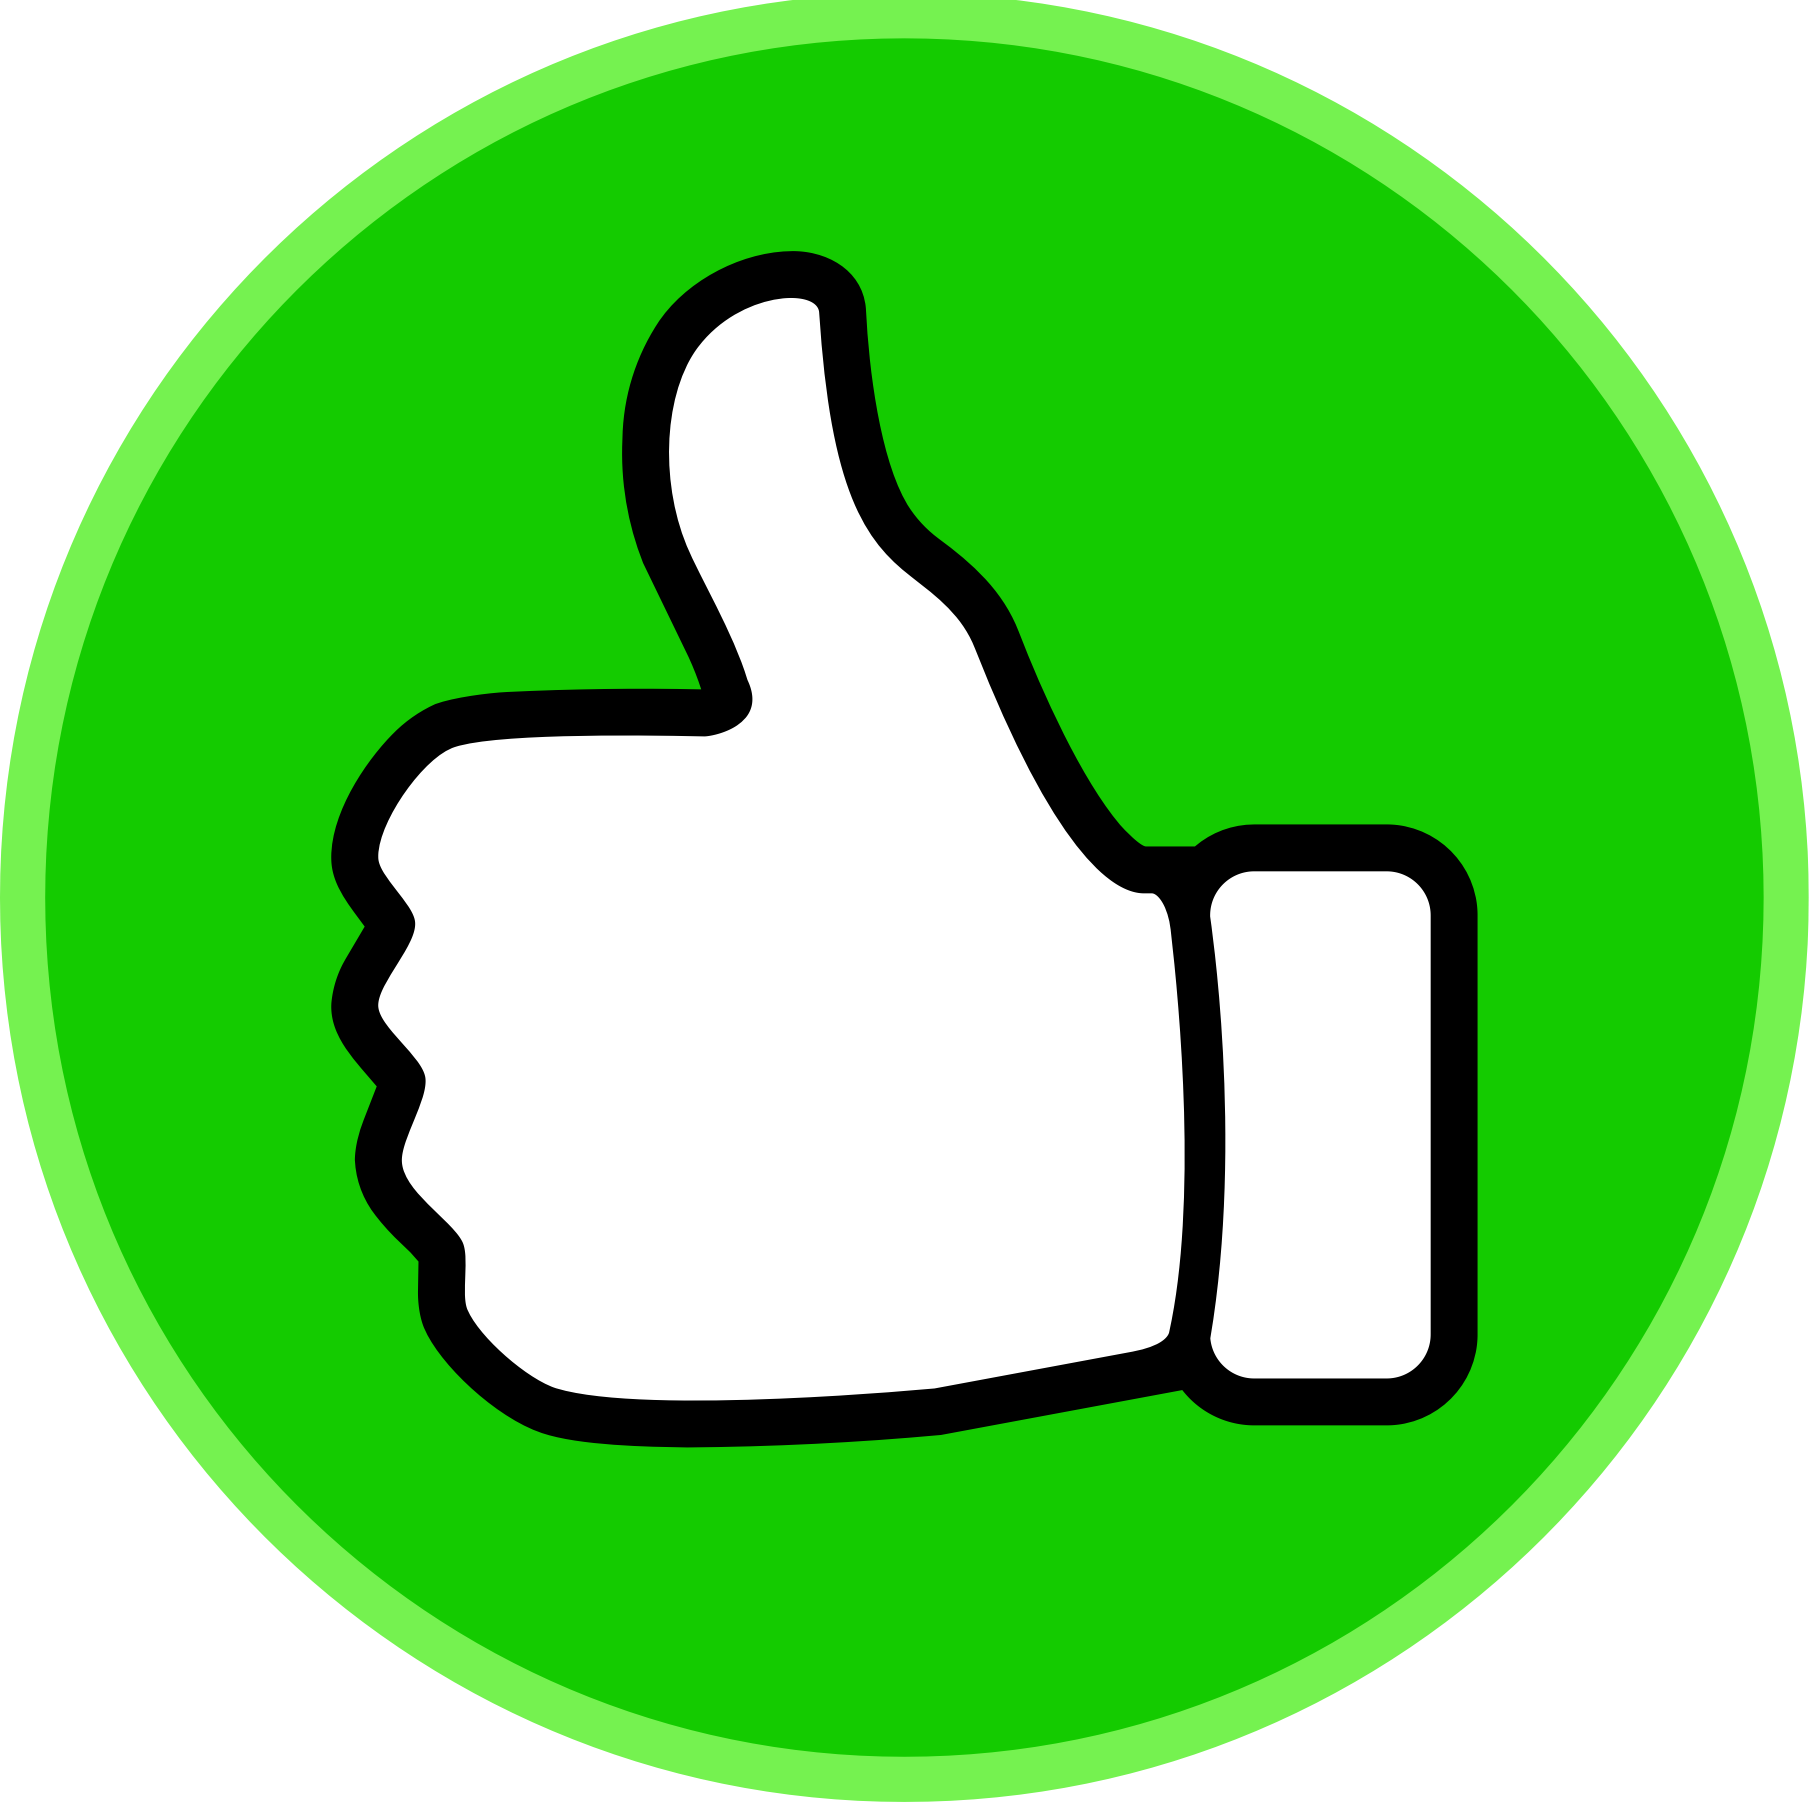 Clipart thumbs up good.